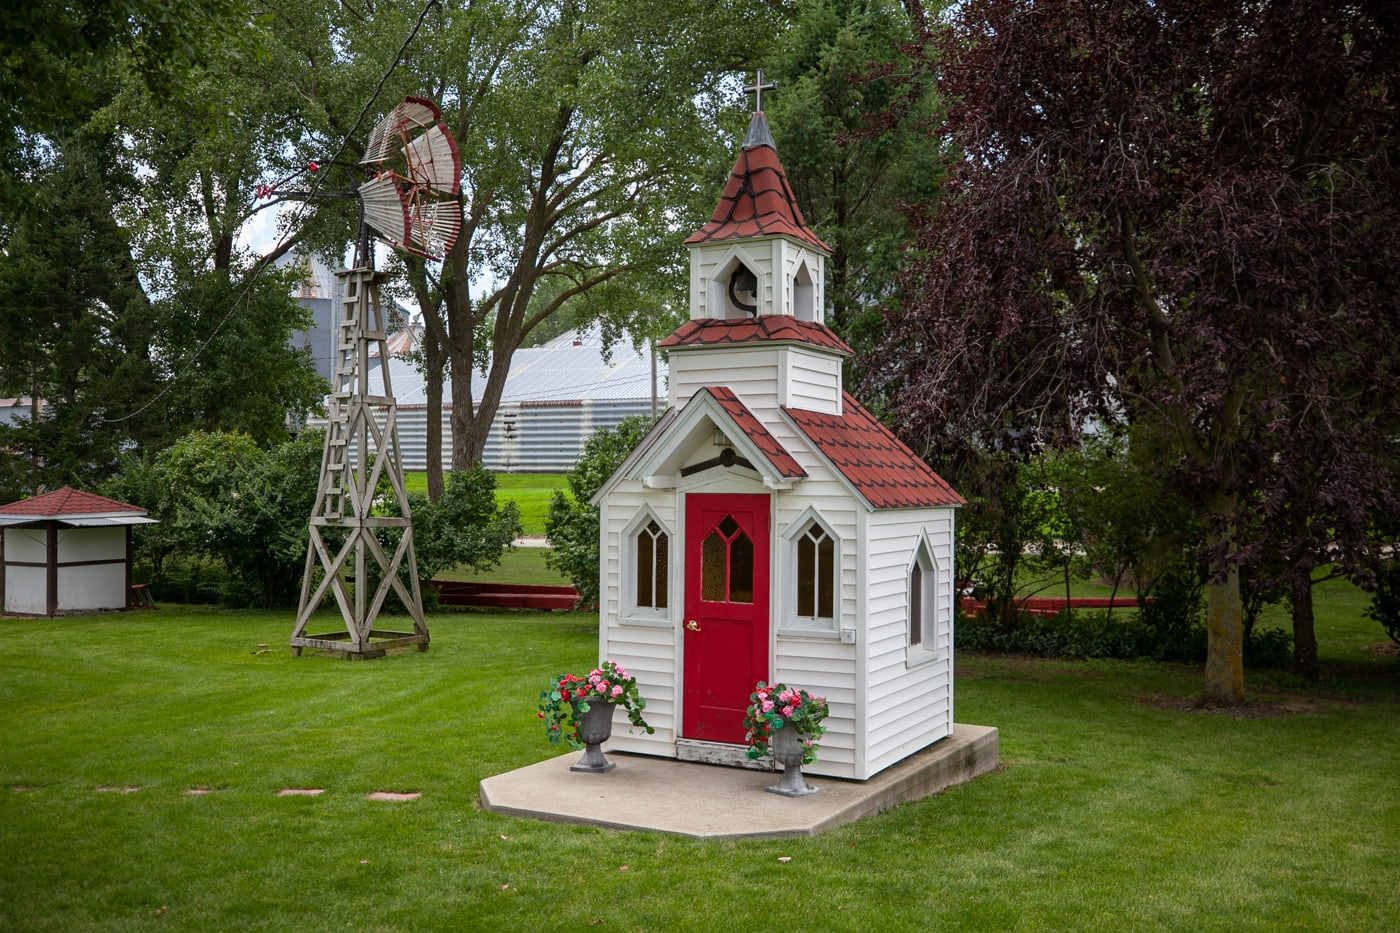 Morning Star Chapel tiny church in Elk Horn, Iowa | Iowa Roadside Attractions